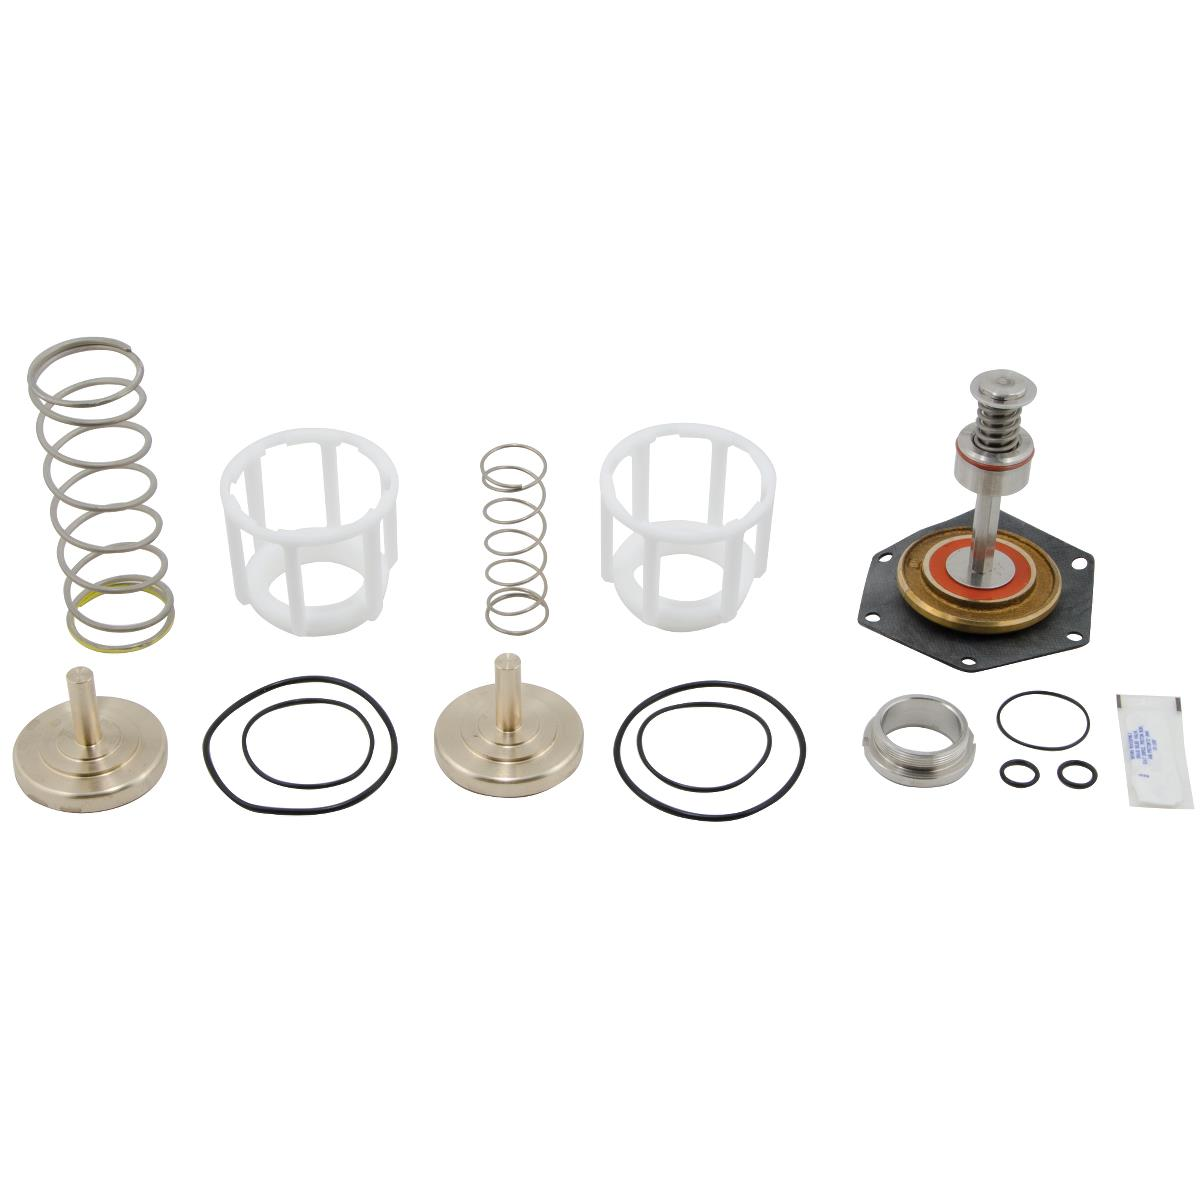 WATTS® 0794071 LFRK 909M1-T Total Repair Kit, For Use With: Model 009/LF009 Reduced Pressure Zone Assemblies, Domestic